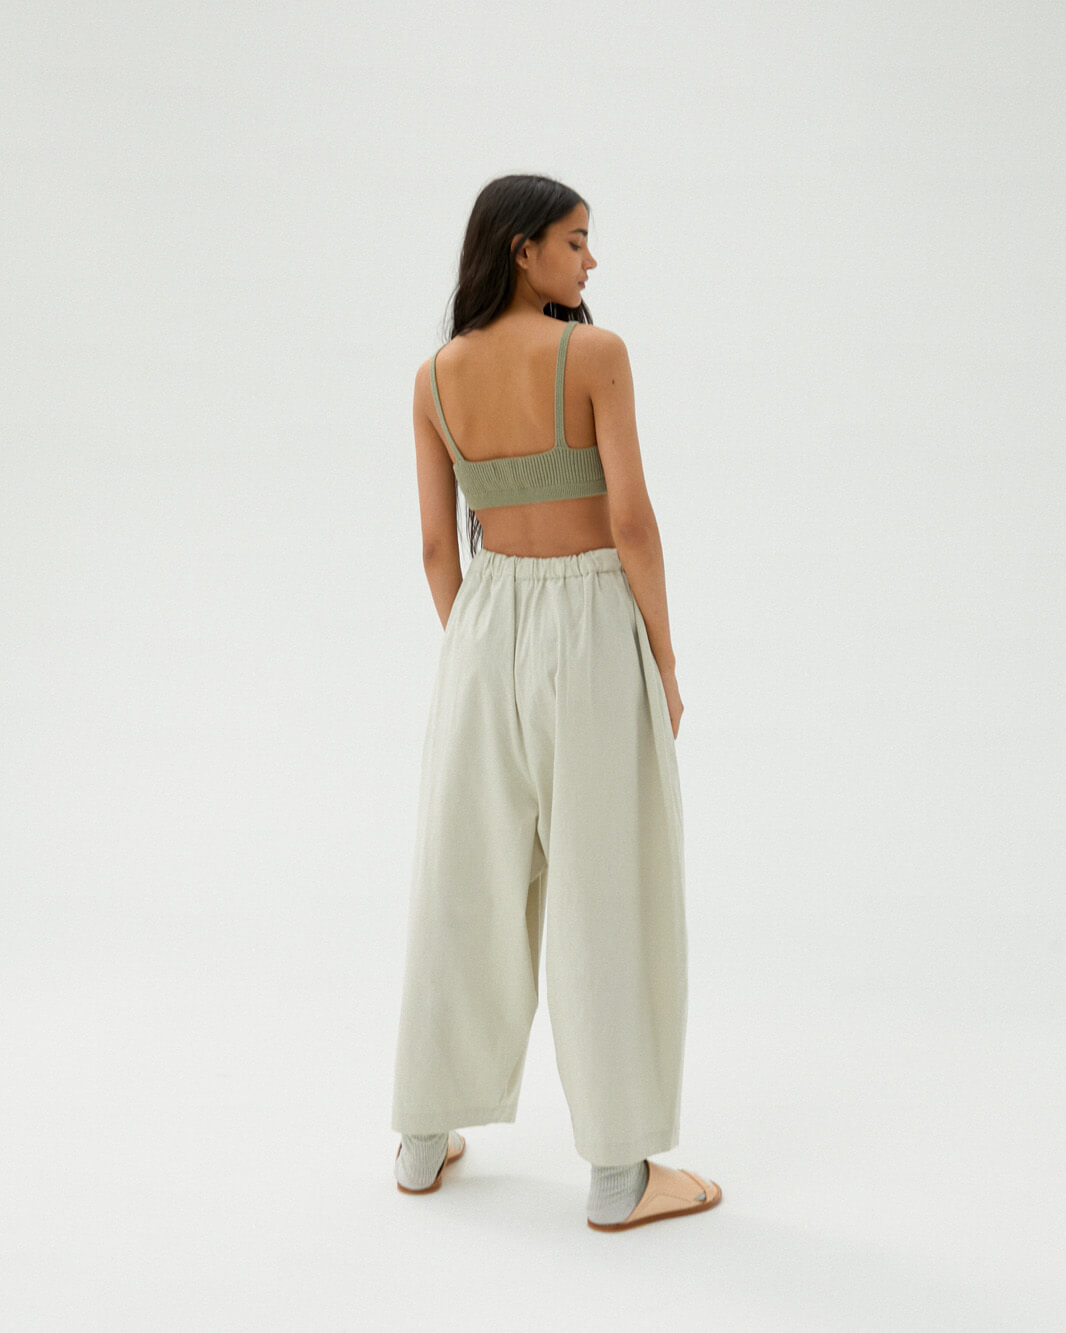 Monica Cordera Maxi Cotton Pants, Pale Grey, ONE SIZE FITS ALL